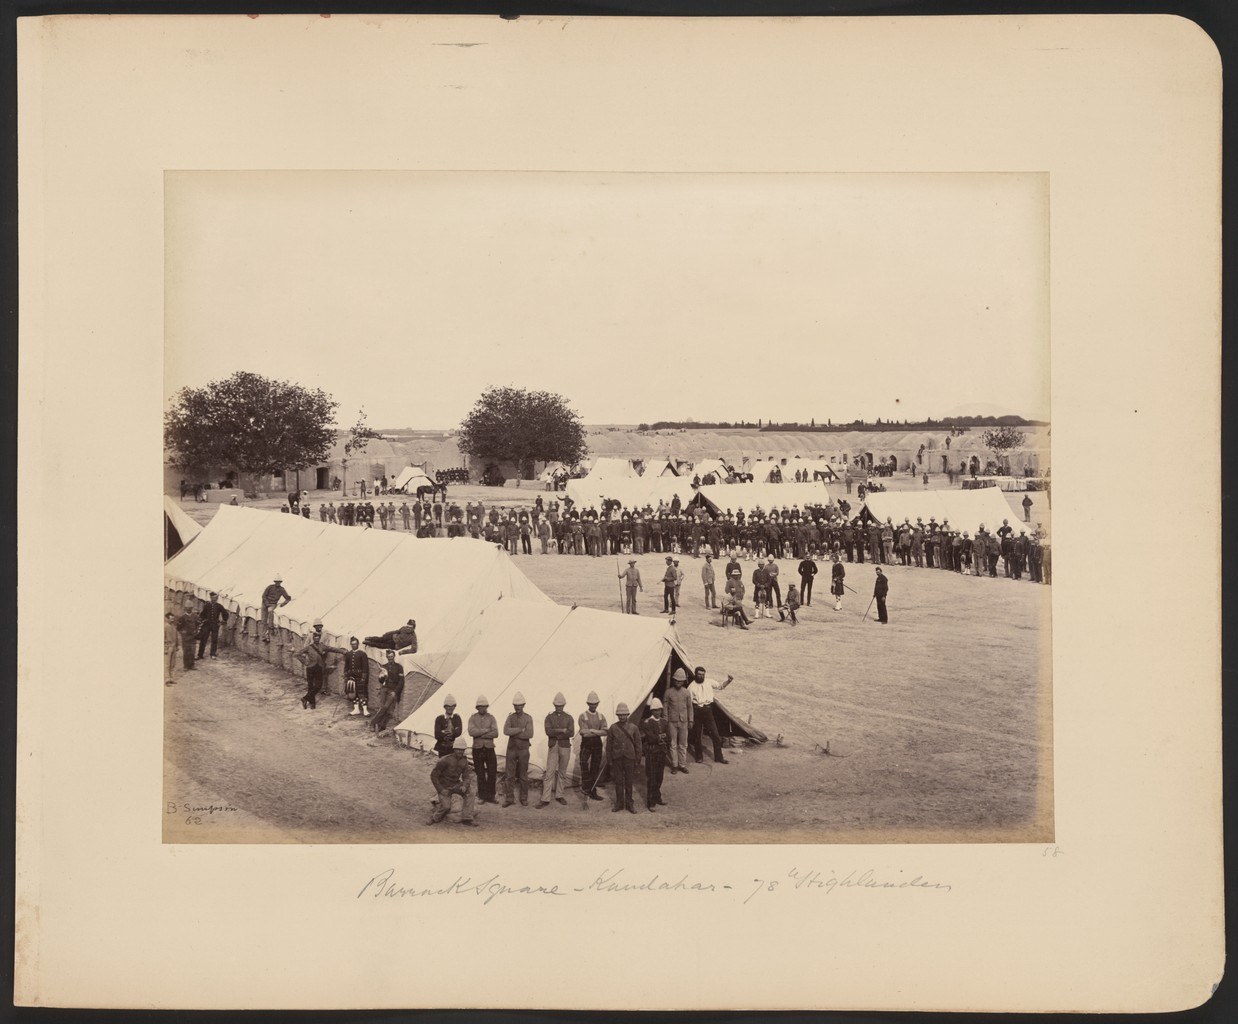 British soldiers from the 78th Highlanders encamped in Kandahar during the Second Anglo-Afghan War of 1878-1880.